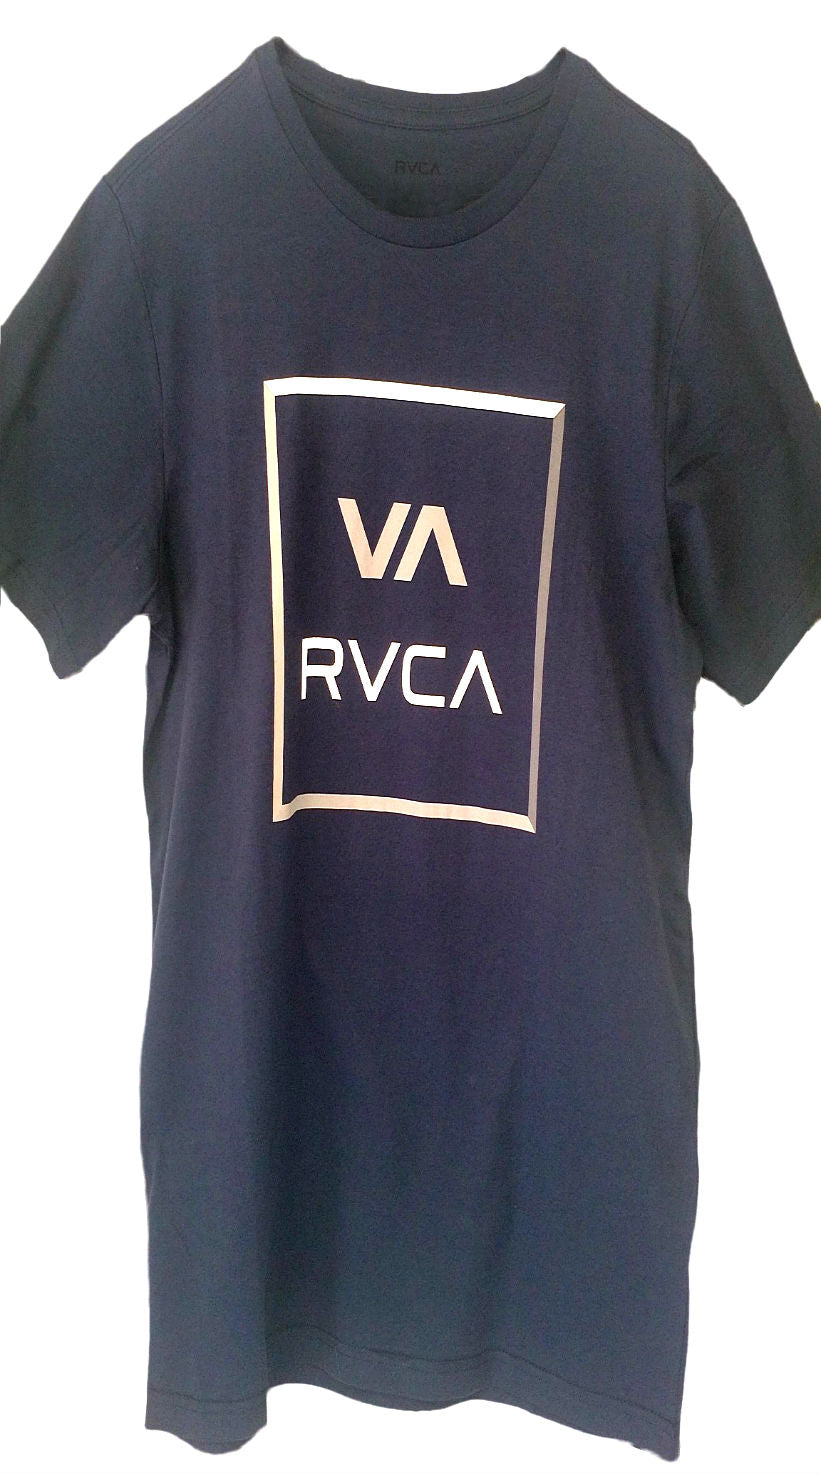 The Color Way T-Shirt - Federal Blue